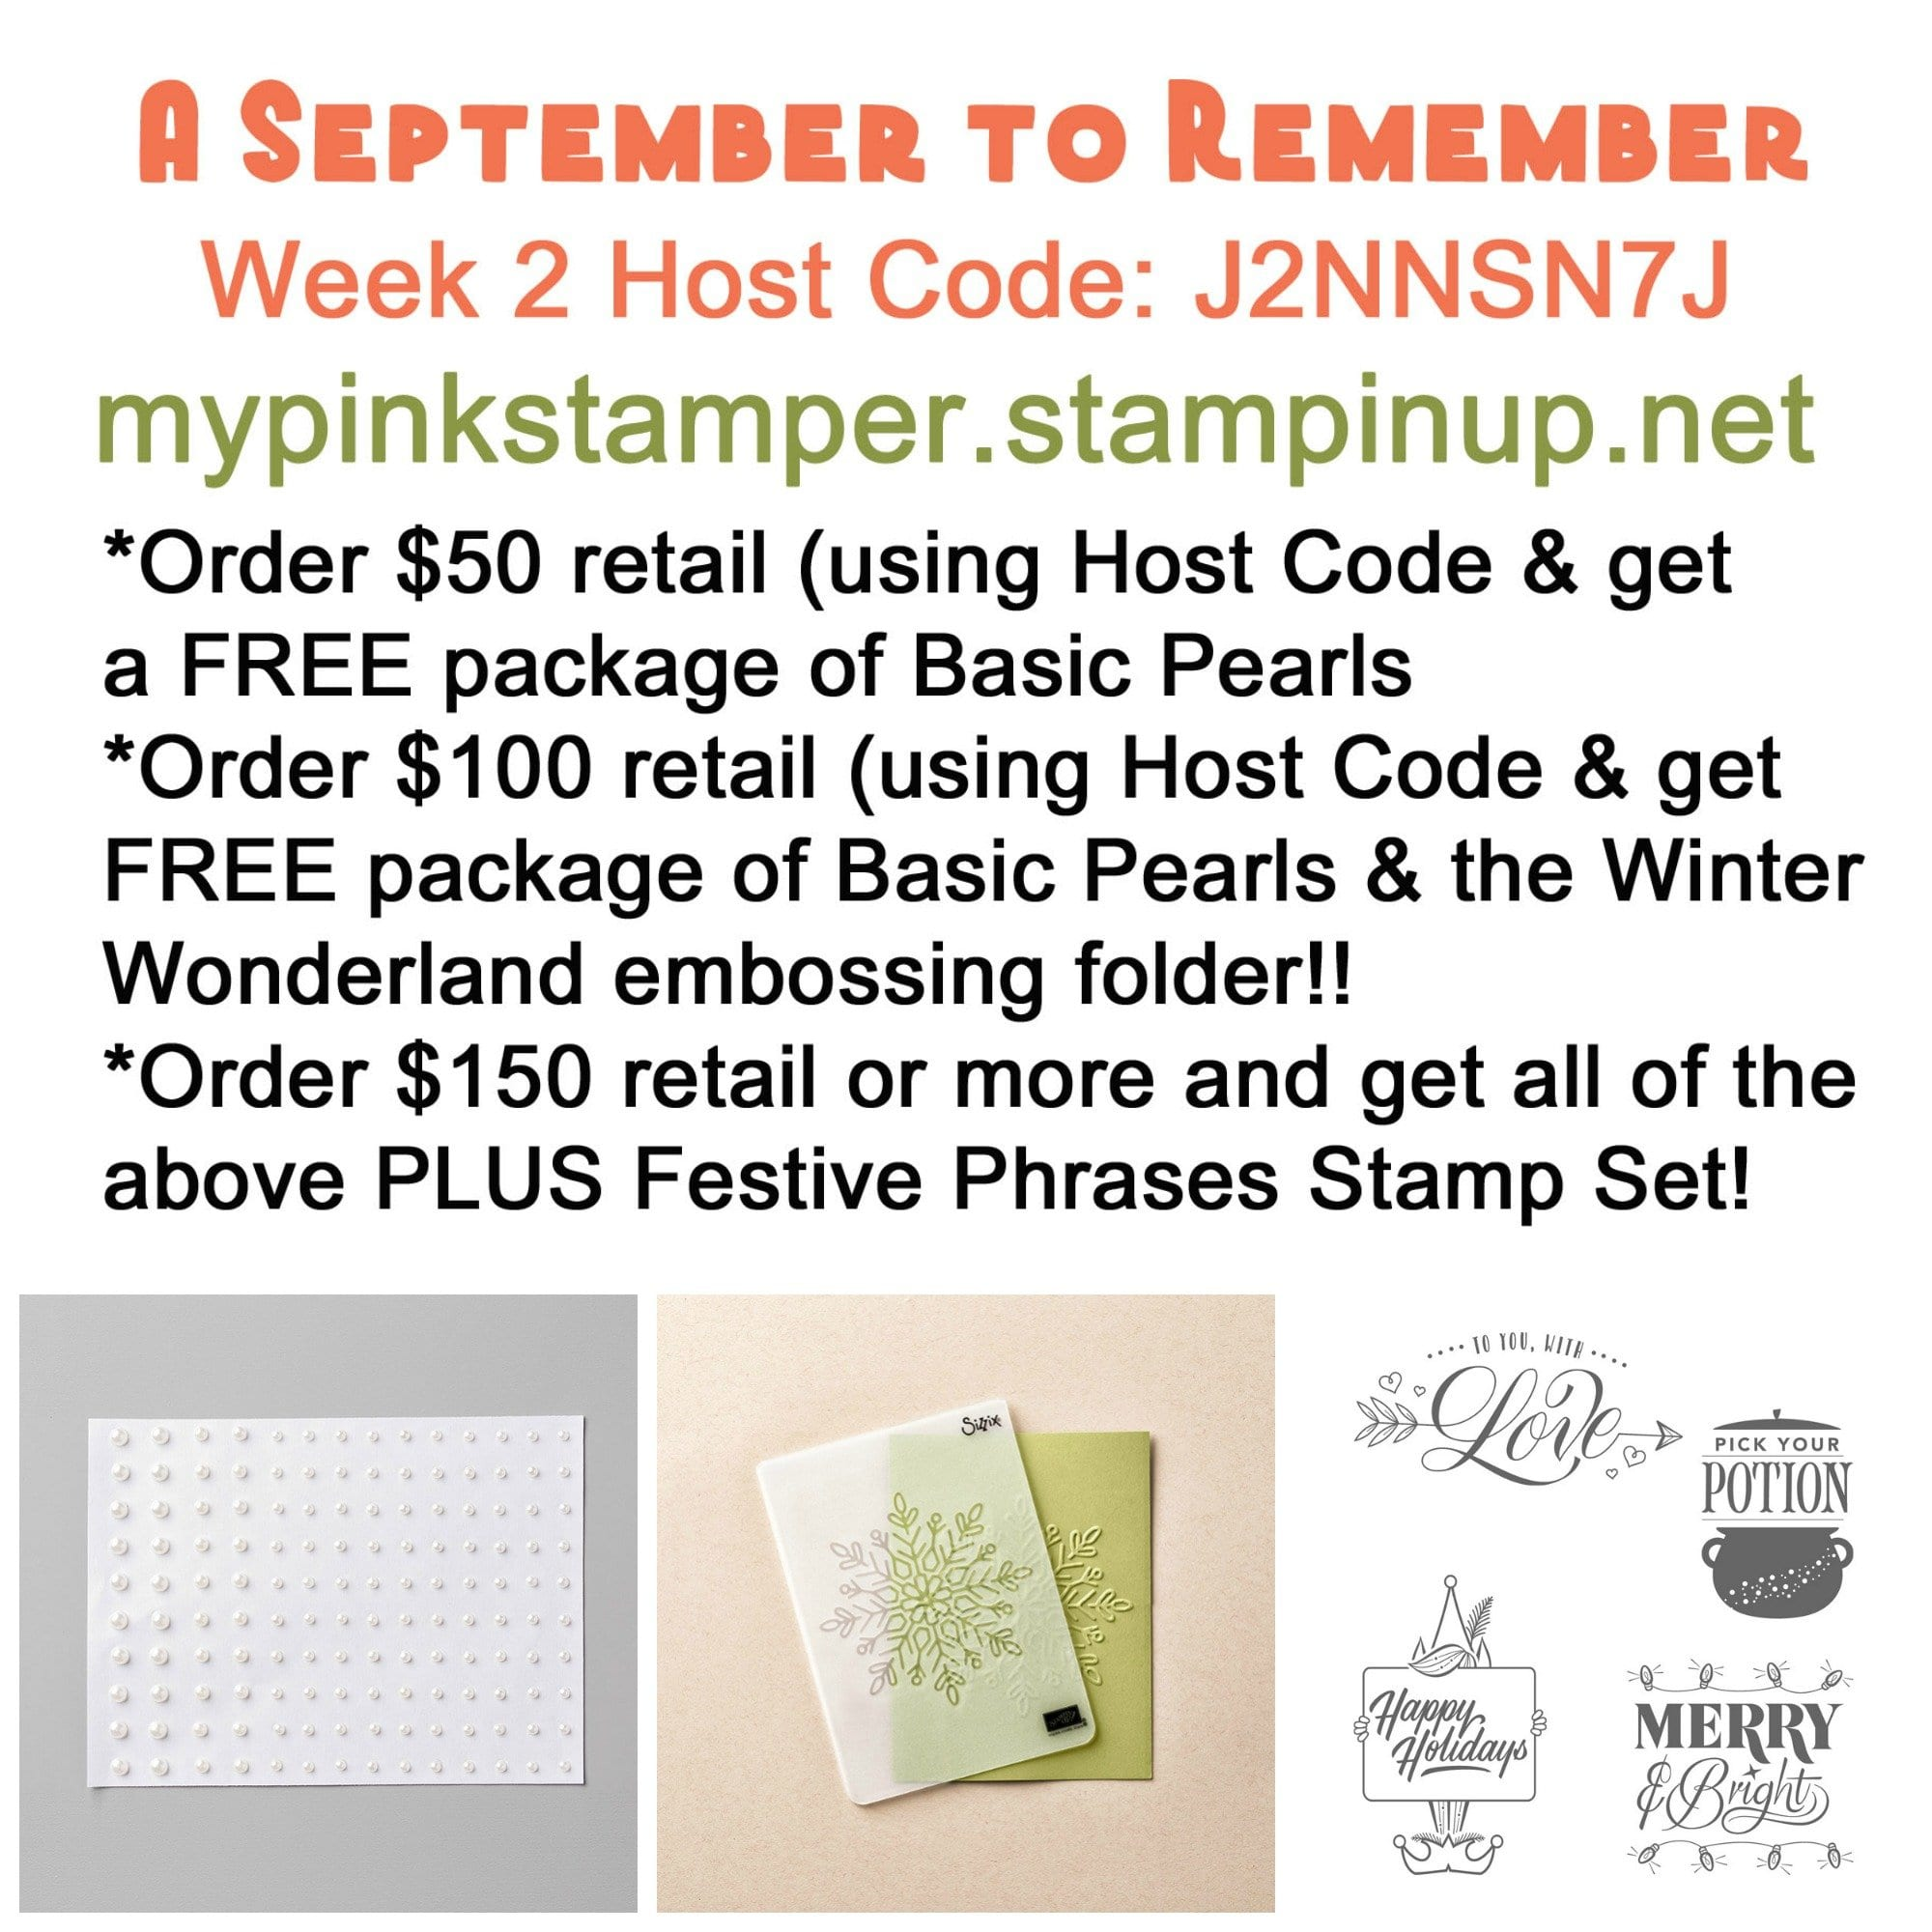 Week 2 – A September to Remember Promotion!